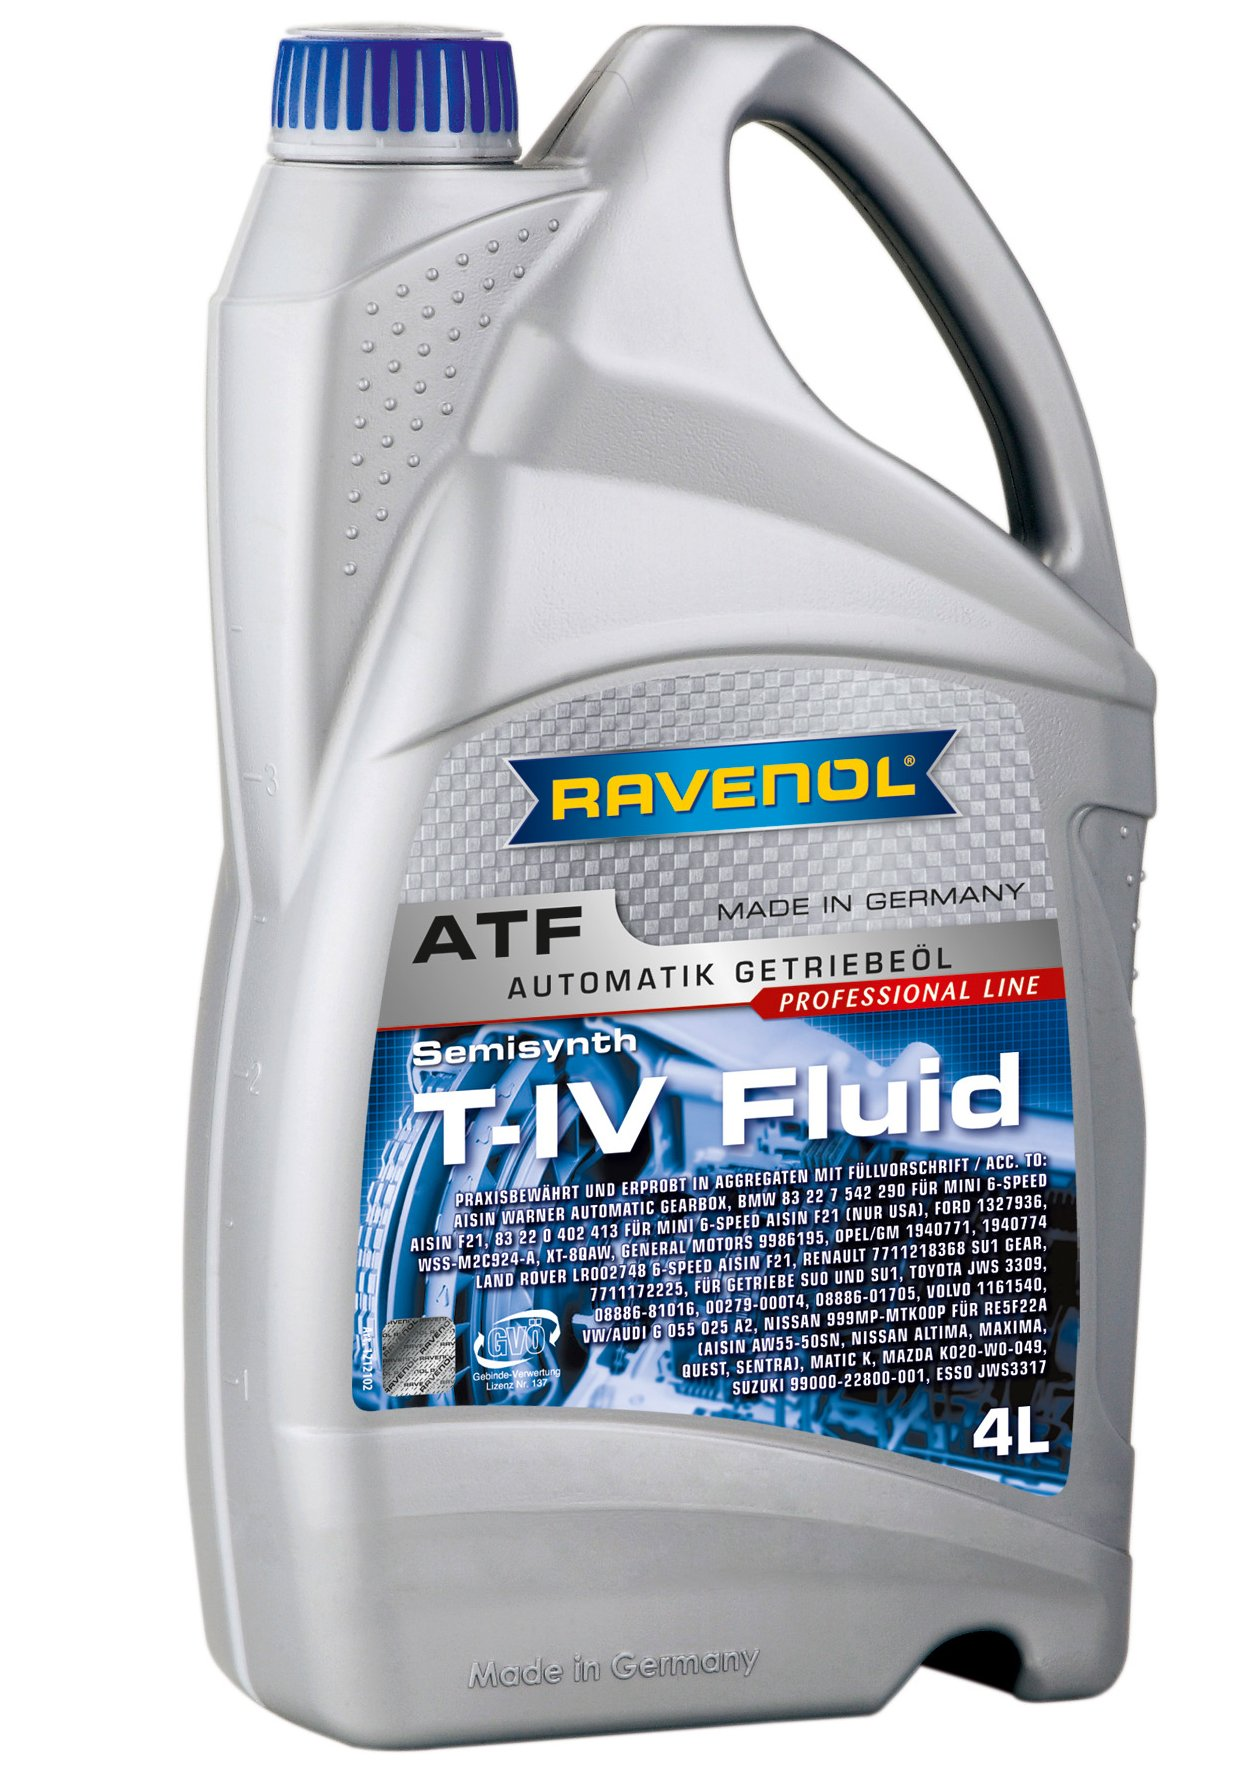 Ravenol J1D2108-004 ATF (Automatic Transmission Fluid) - T-IV Fluid for Toyota and Aisin AW Transmissions (4 Liter)